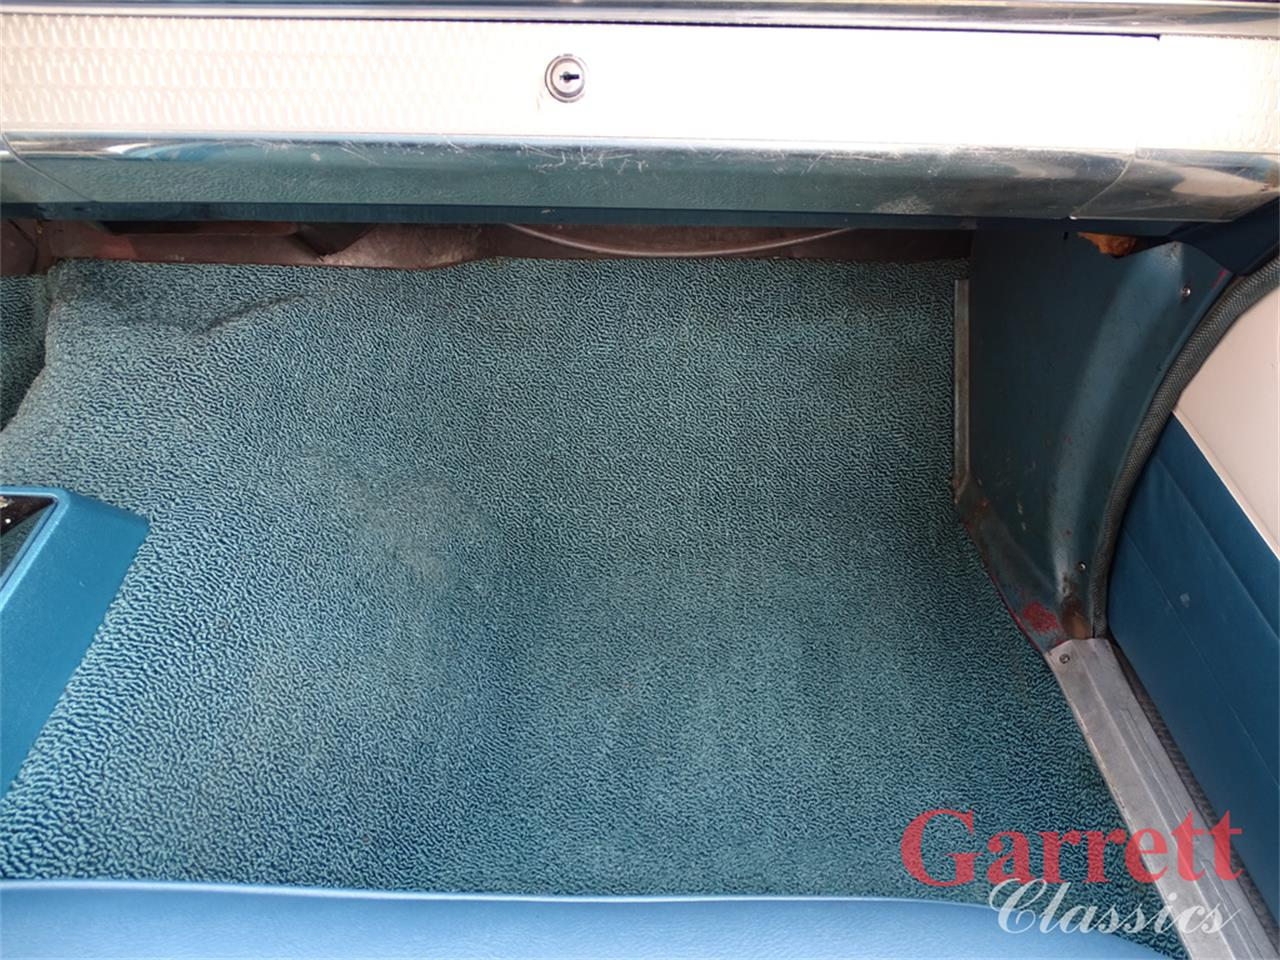 1961 Plymouth Belvedere for sale in Lewisville, TX – photo 21